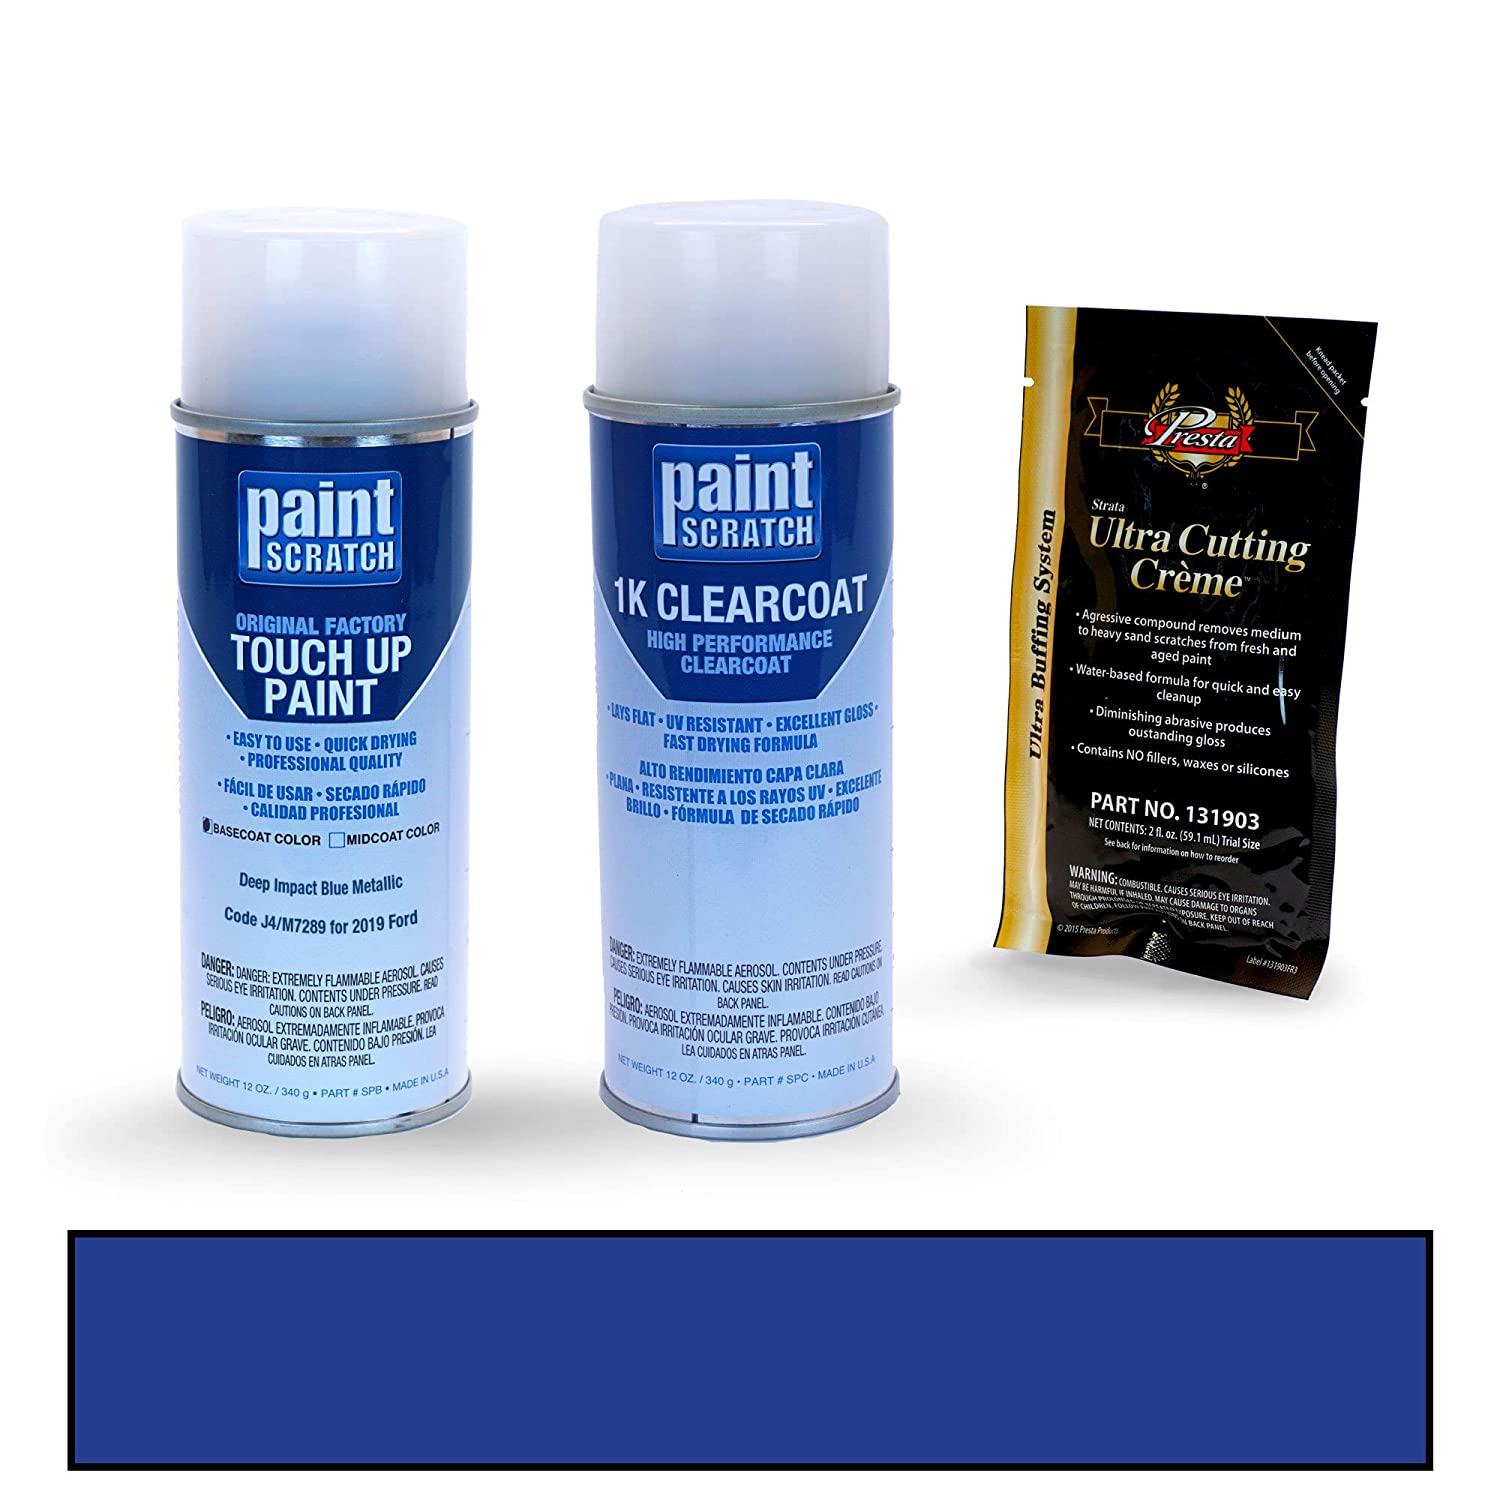 PAINTSCRATCH Deep Impact Blue Metallic J4/M7289 for 2019 Ford Fiesta - Touch Up Paint Spray Can Kit - Original Factory OEM Automotive Paint - Color Match ...